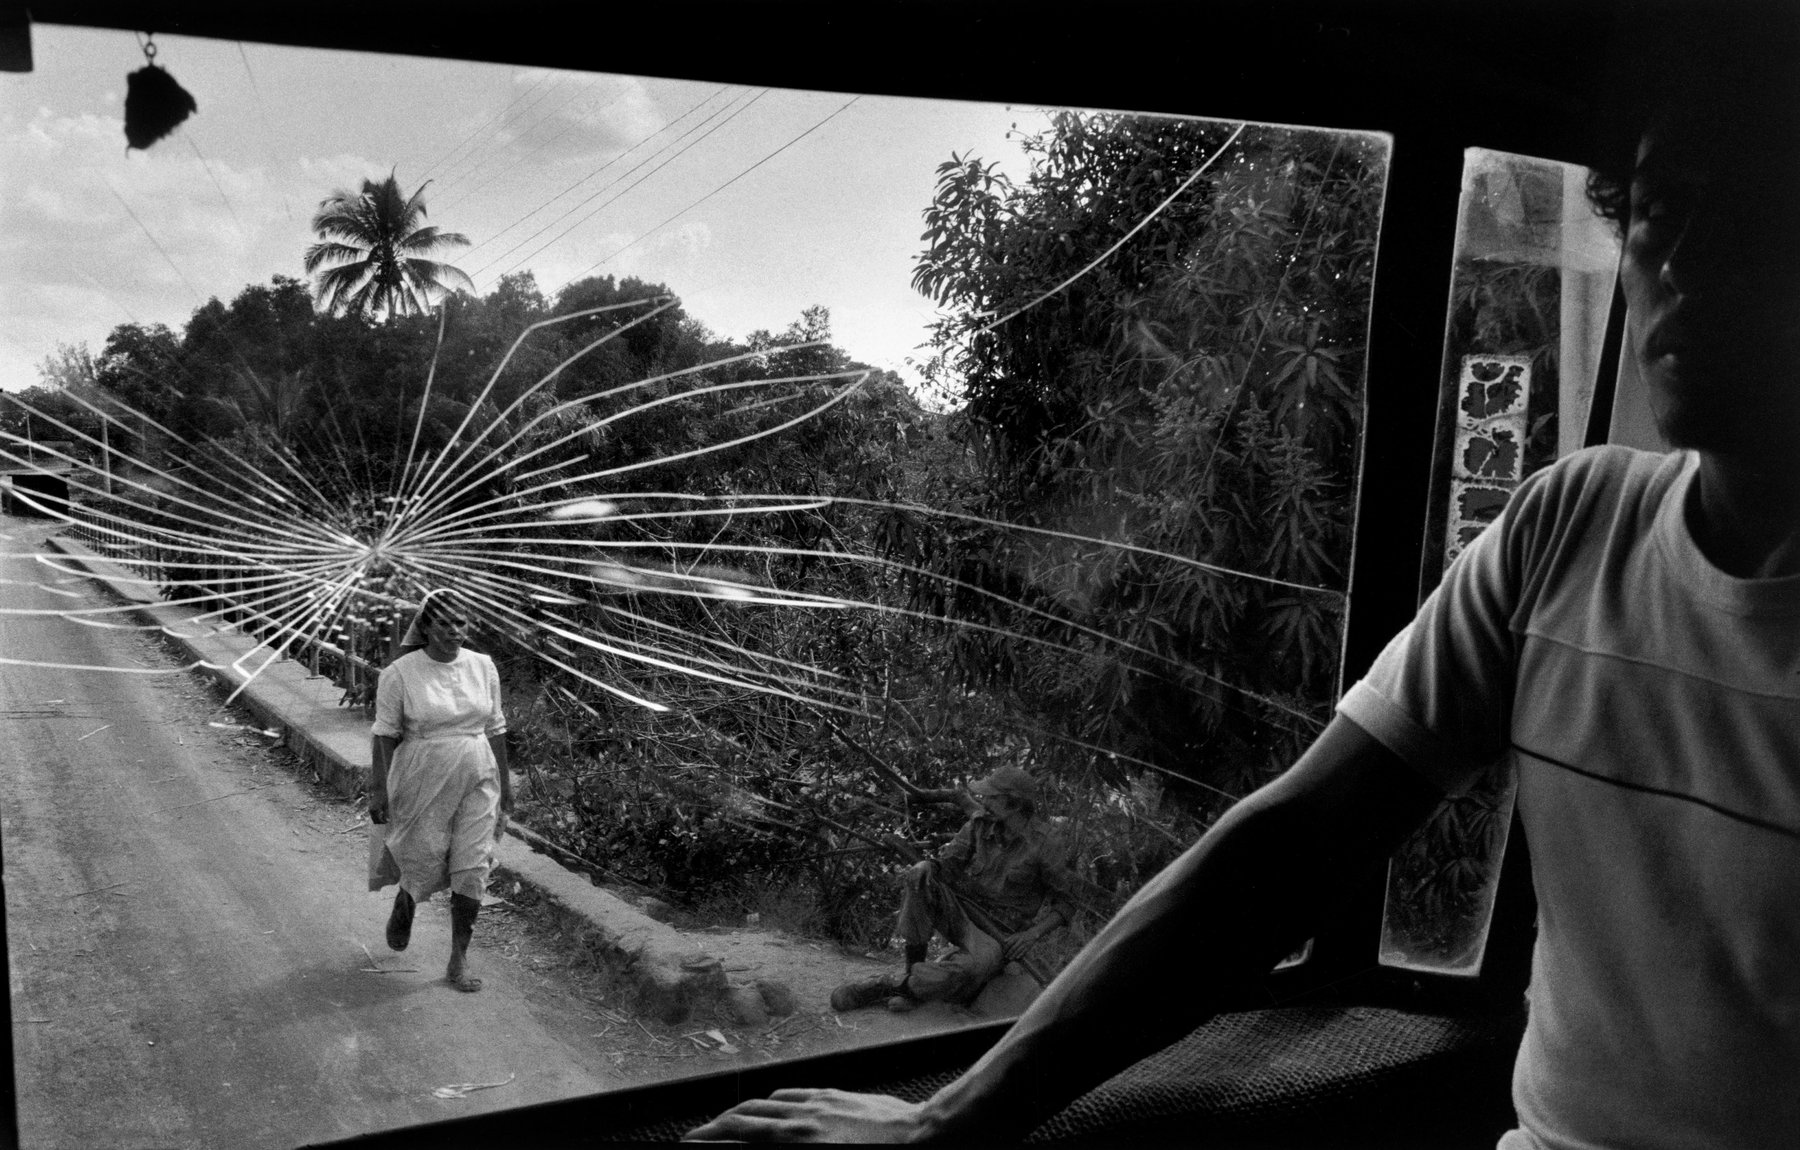 A man standing near the cracked window of a bus, which looks out onto a rural road where a woman in a white headscarf walks and a soldiers sits watching her